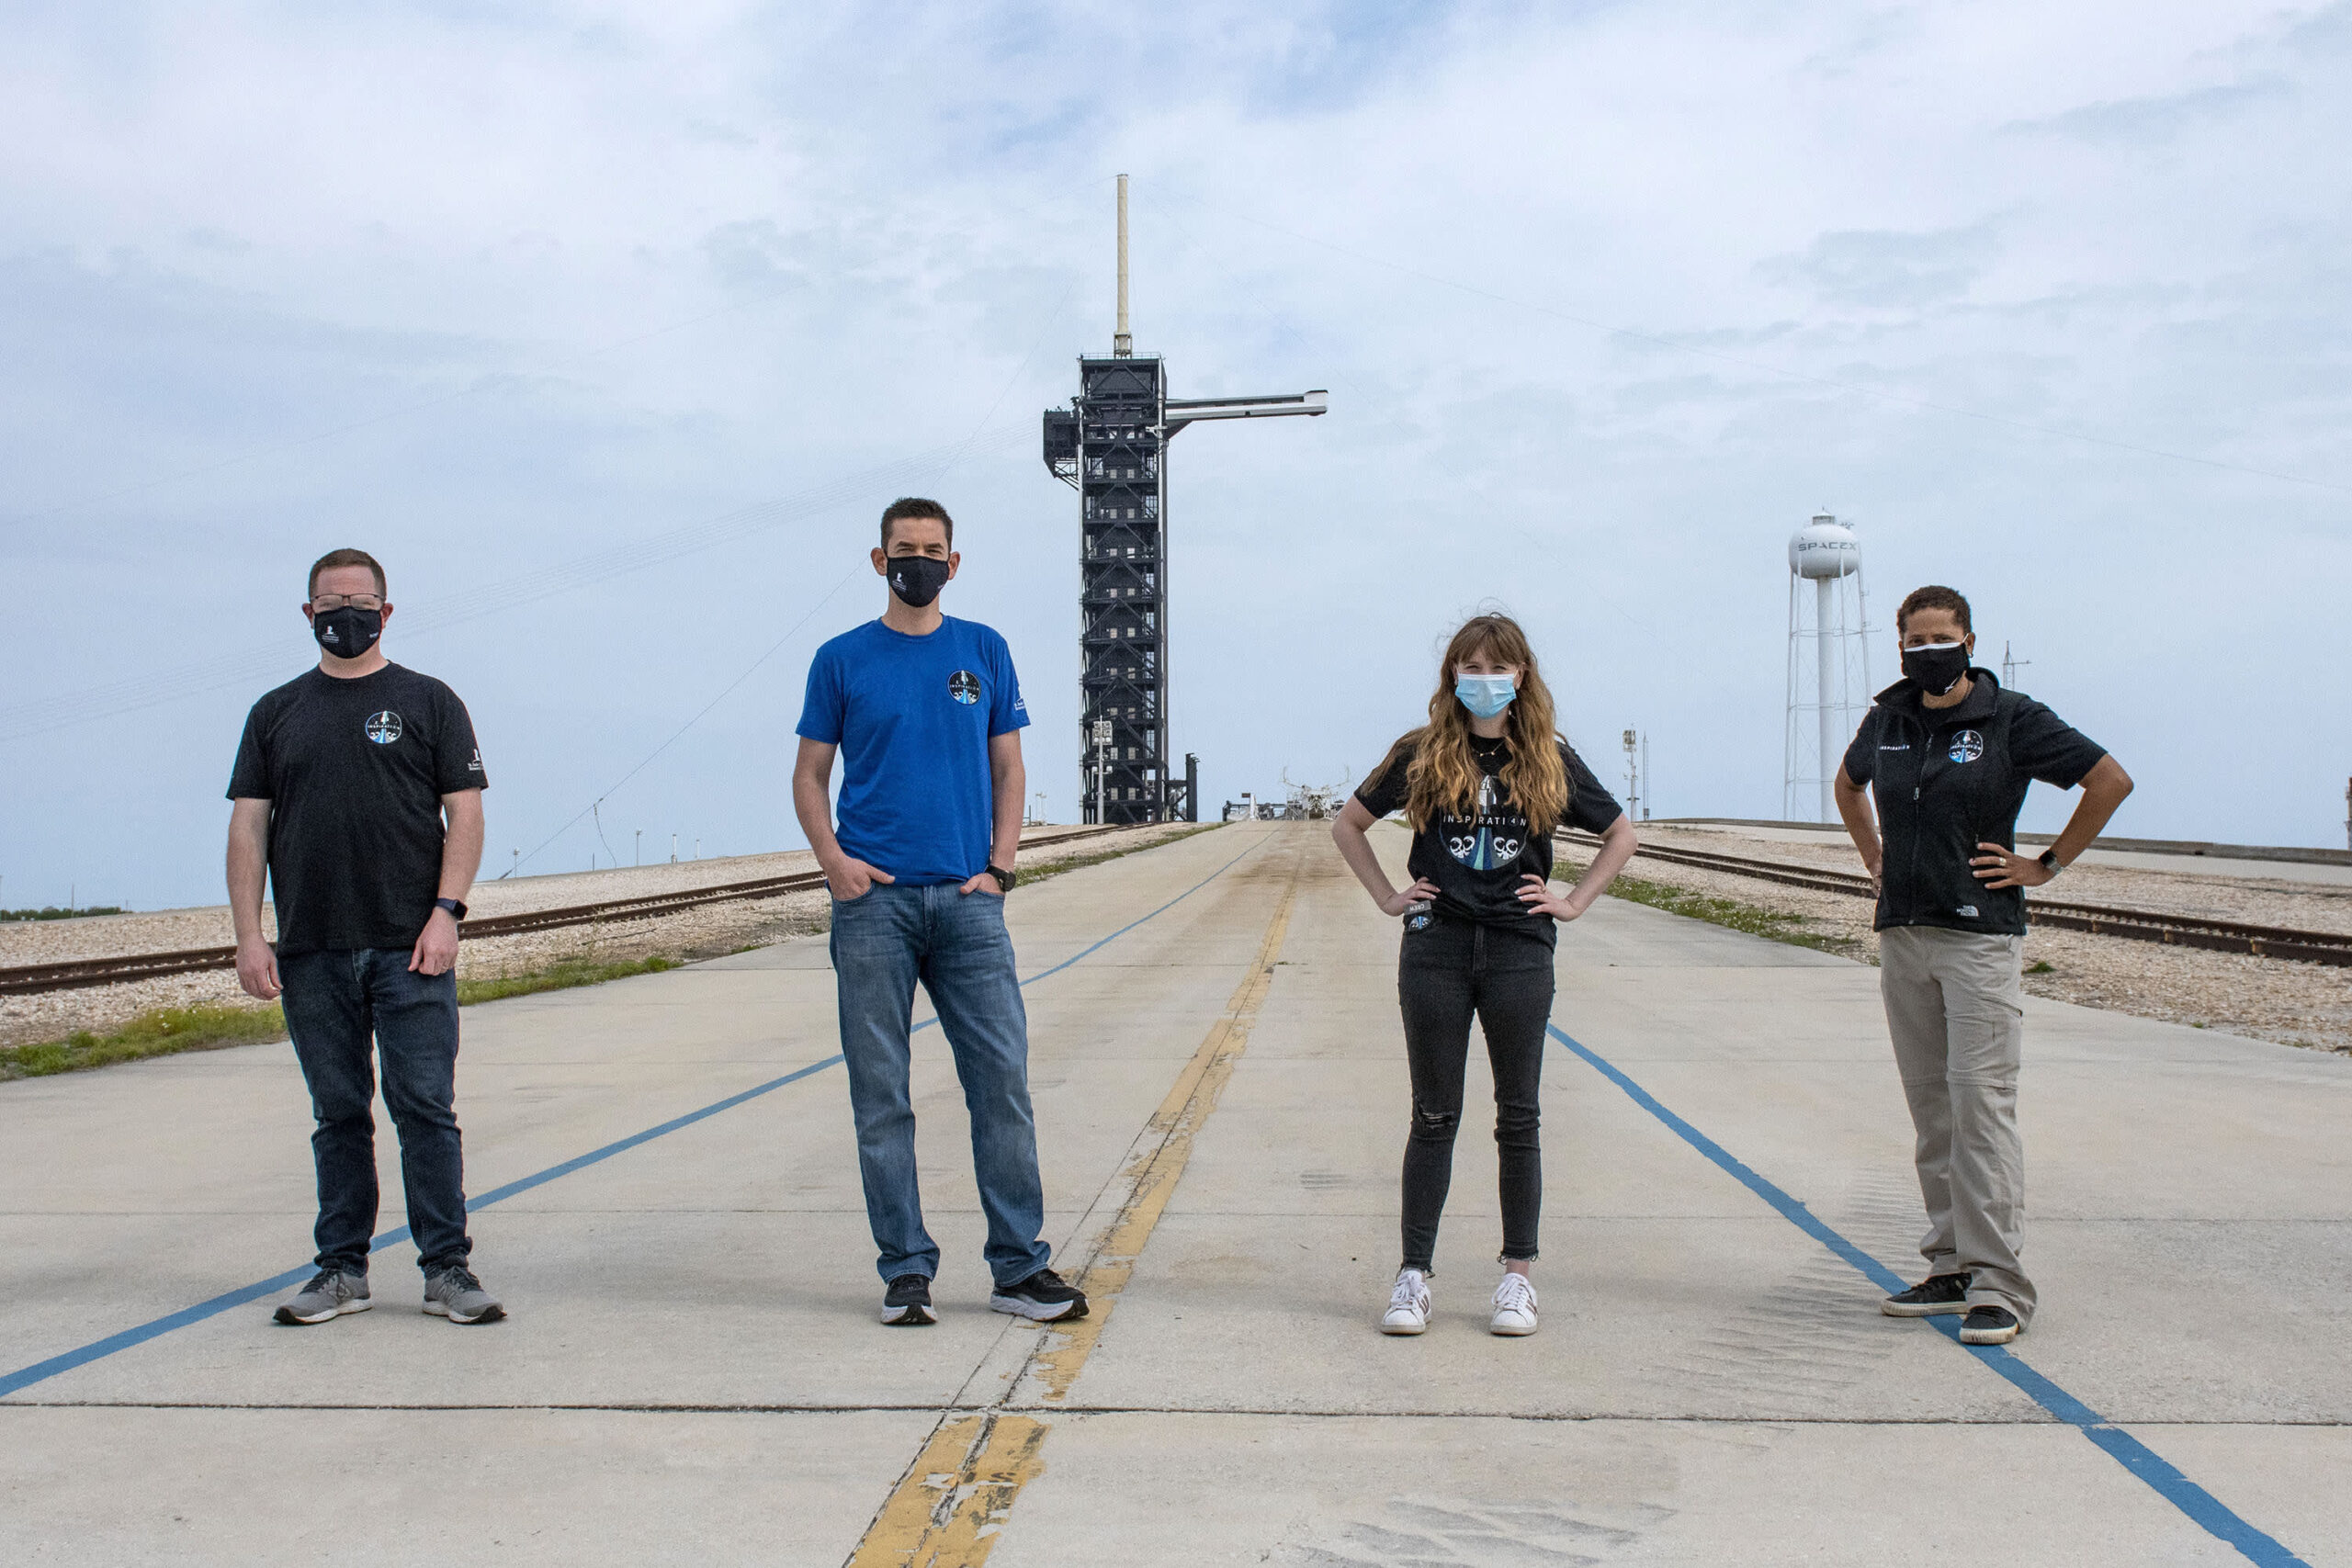 Inspiration4 mission is a success: SpaceX sets new standard for space tourism